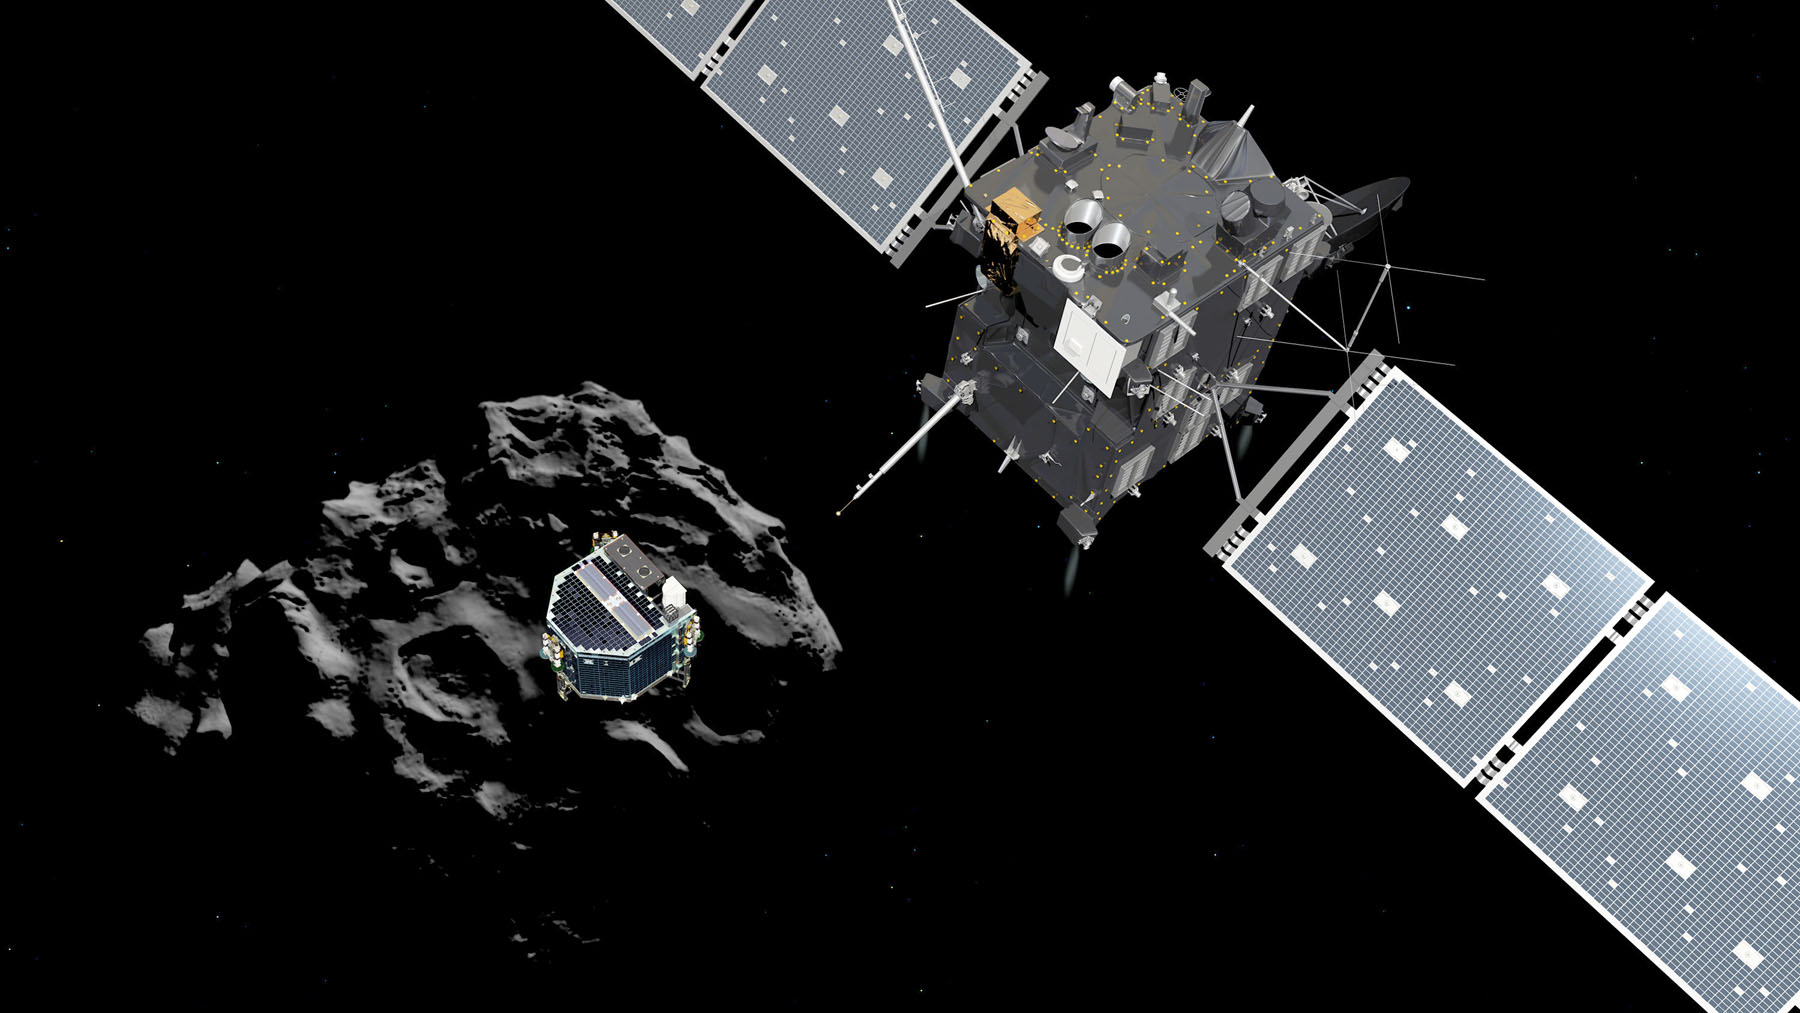 We Land on a Comet Today! Updates on Philae's Progress